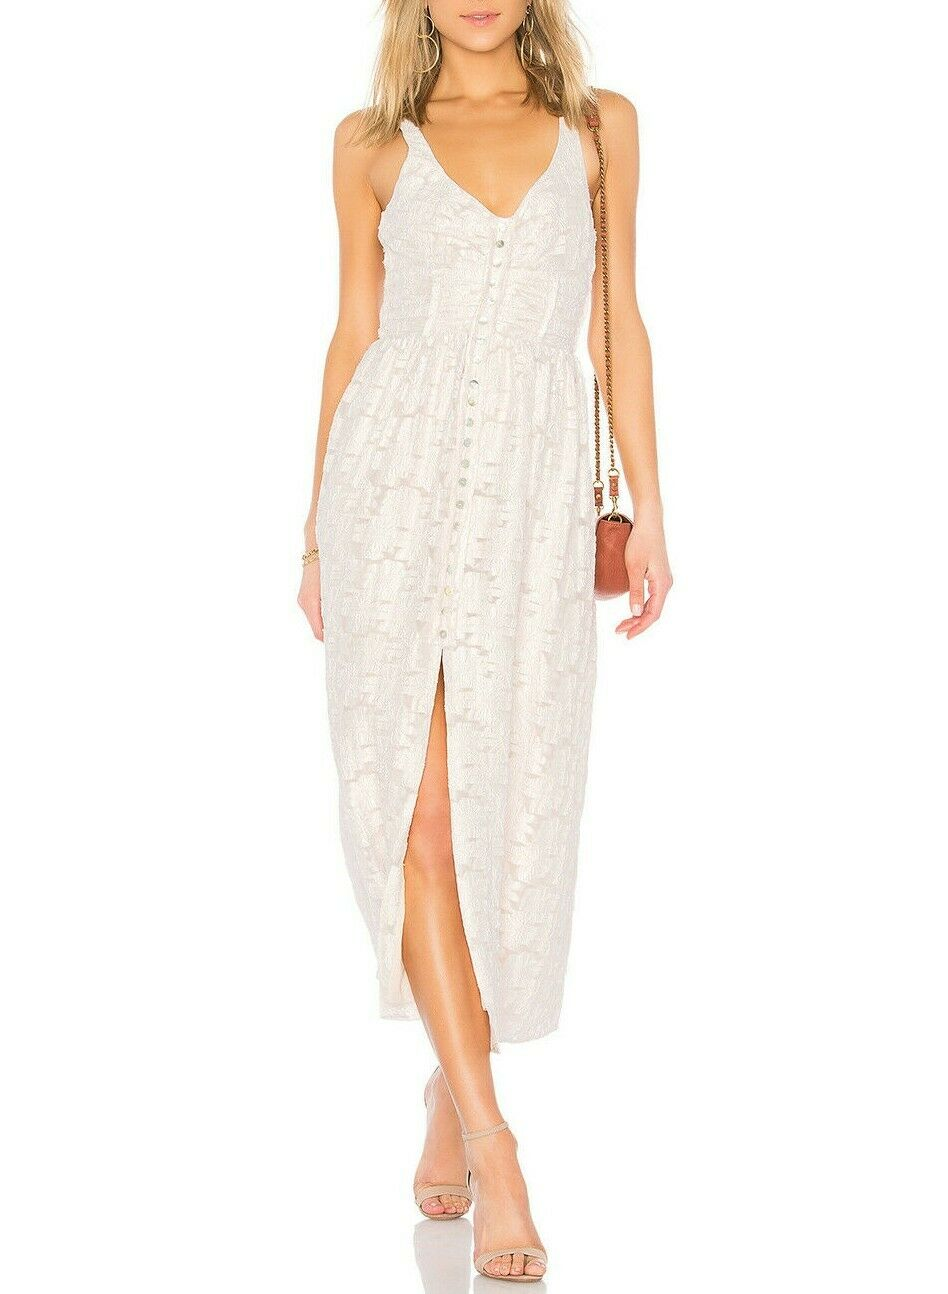 Free People Fresh as a Daisy Maxi Dress MSRP  Größe 6 A 563 NEW